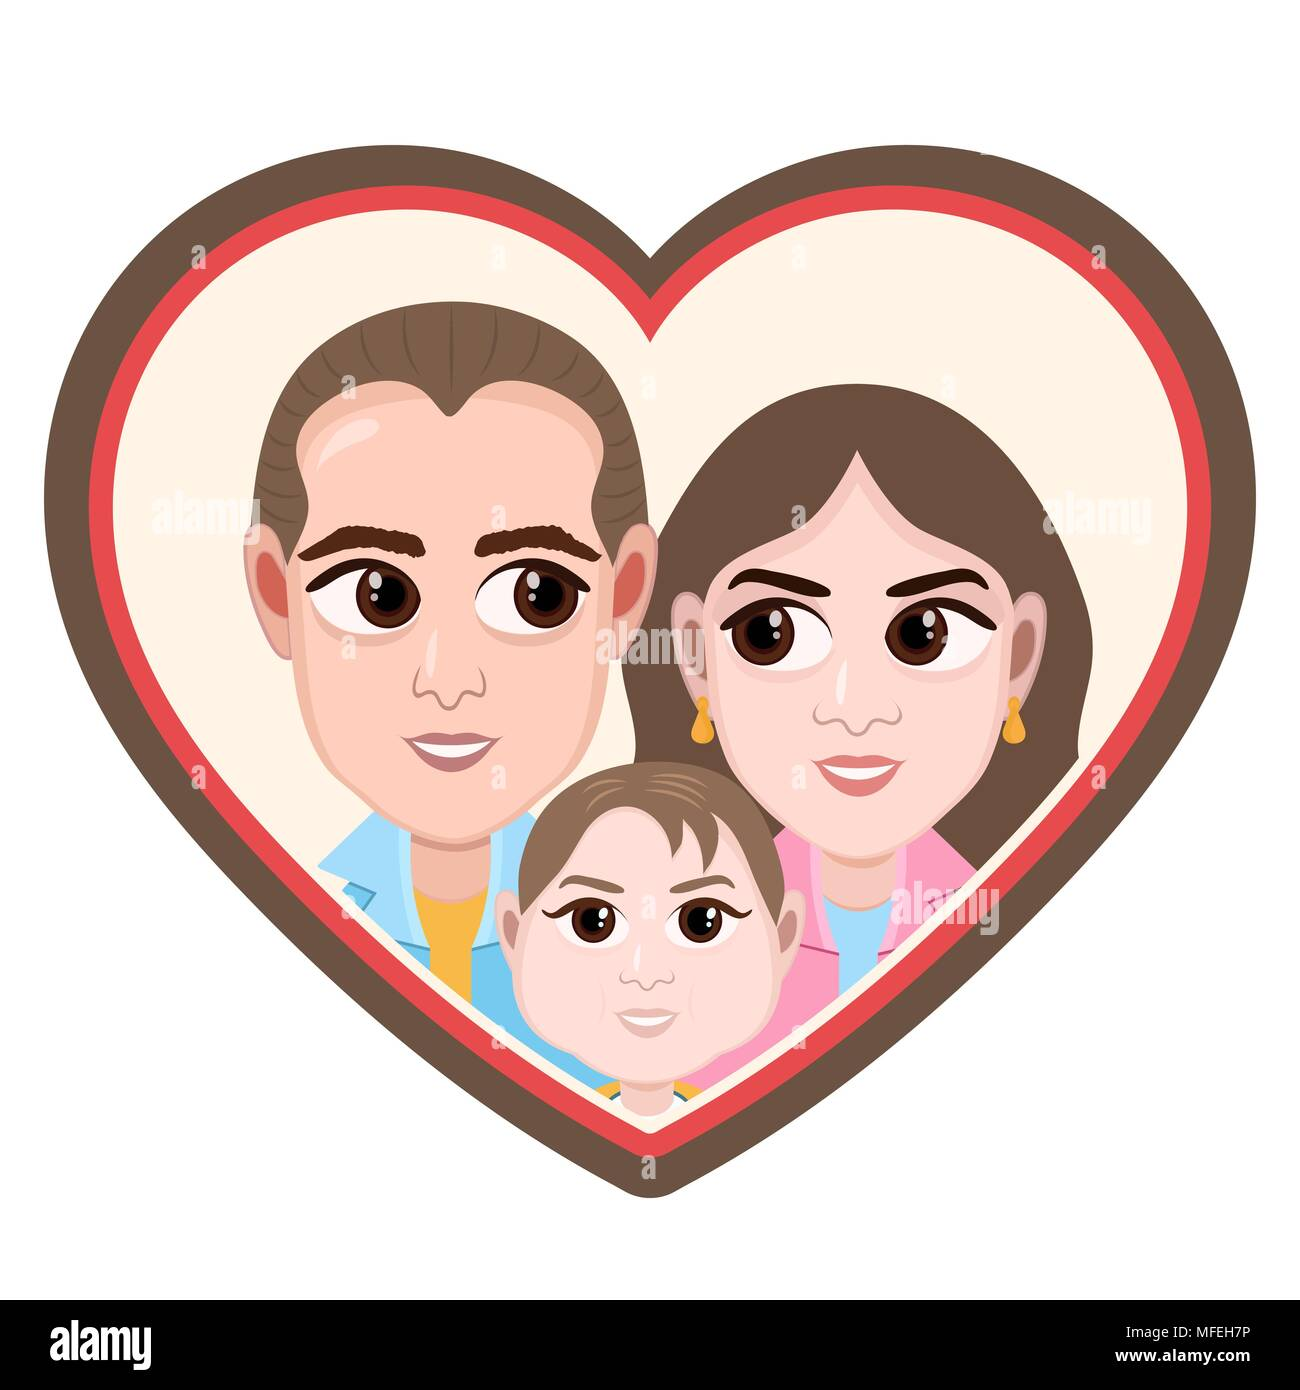 827fc53c0e42b Cartoon character, vector drawing portrait happy family couples ...